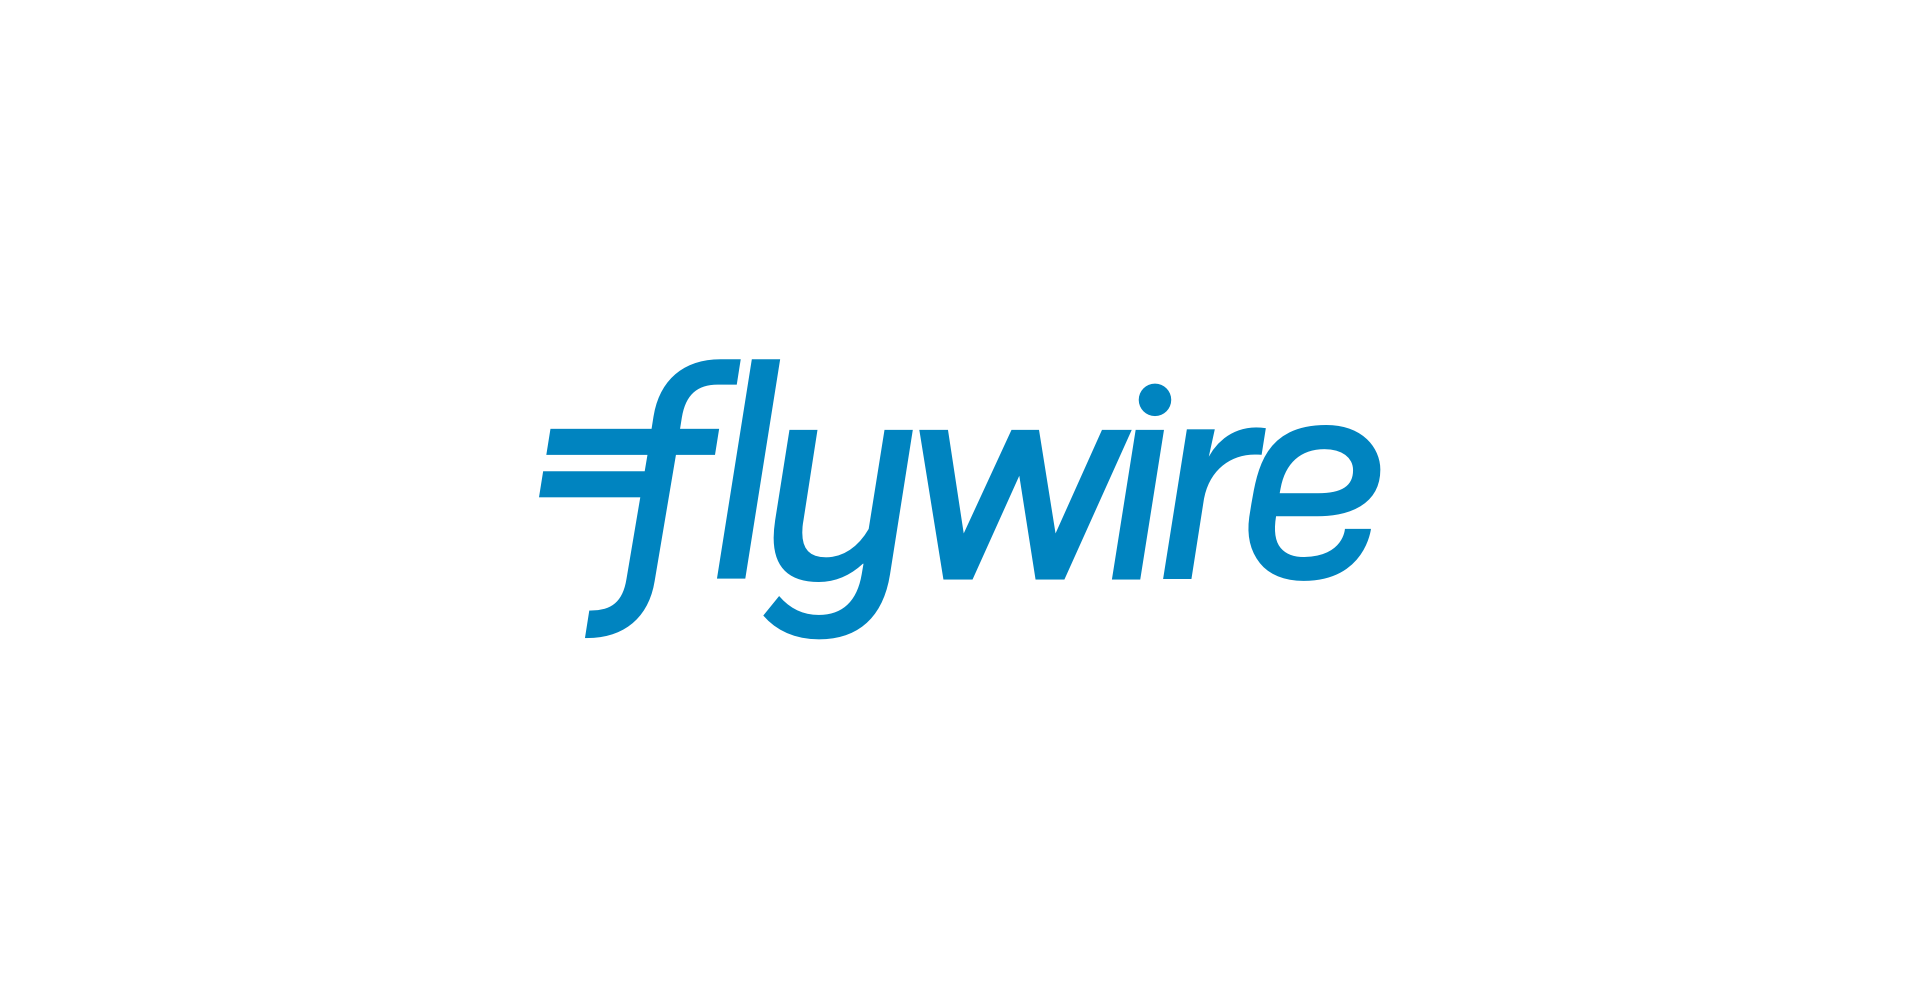 Payment by Flywire